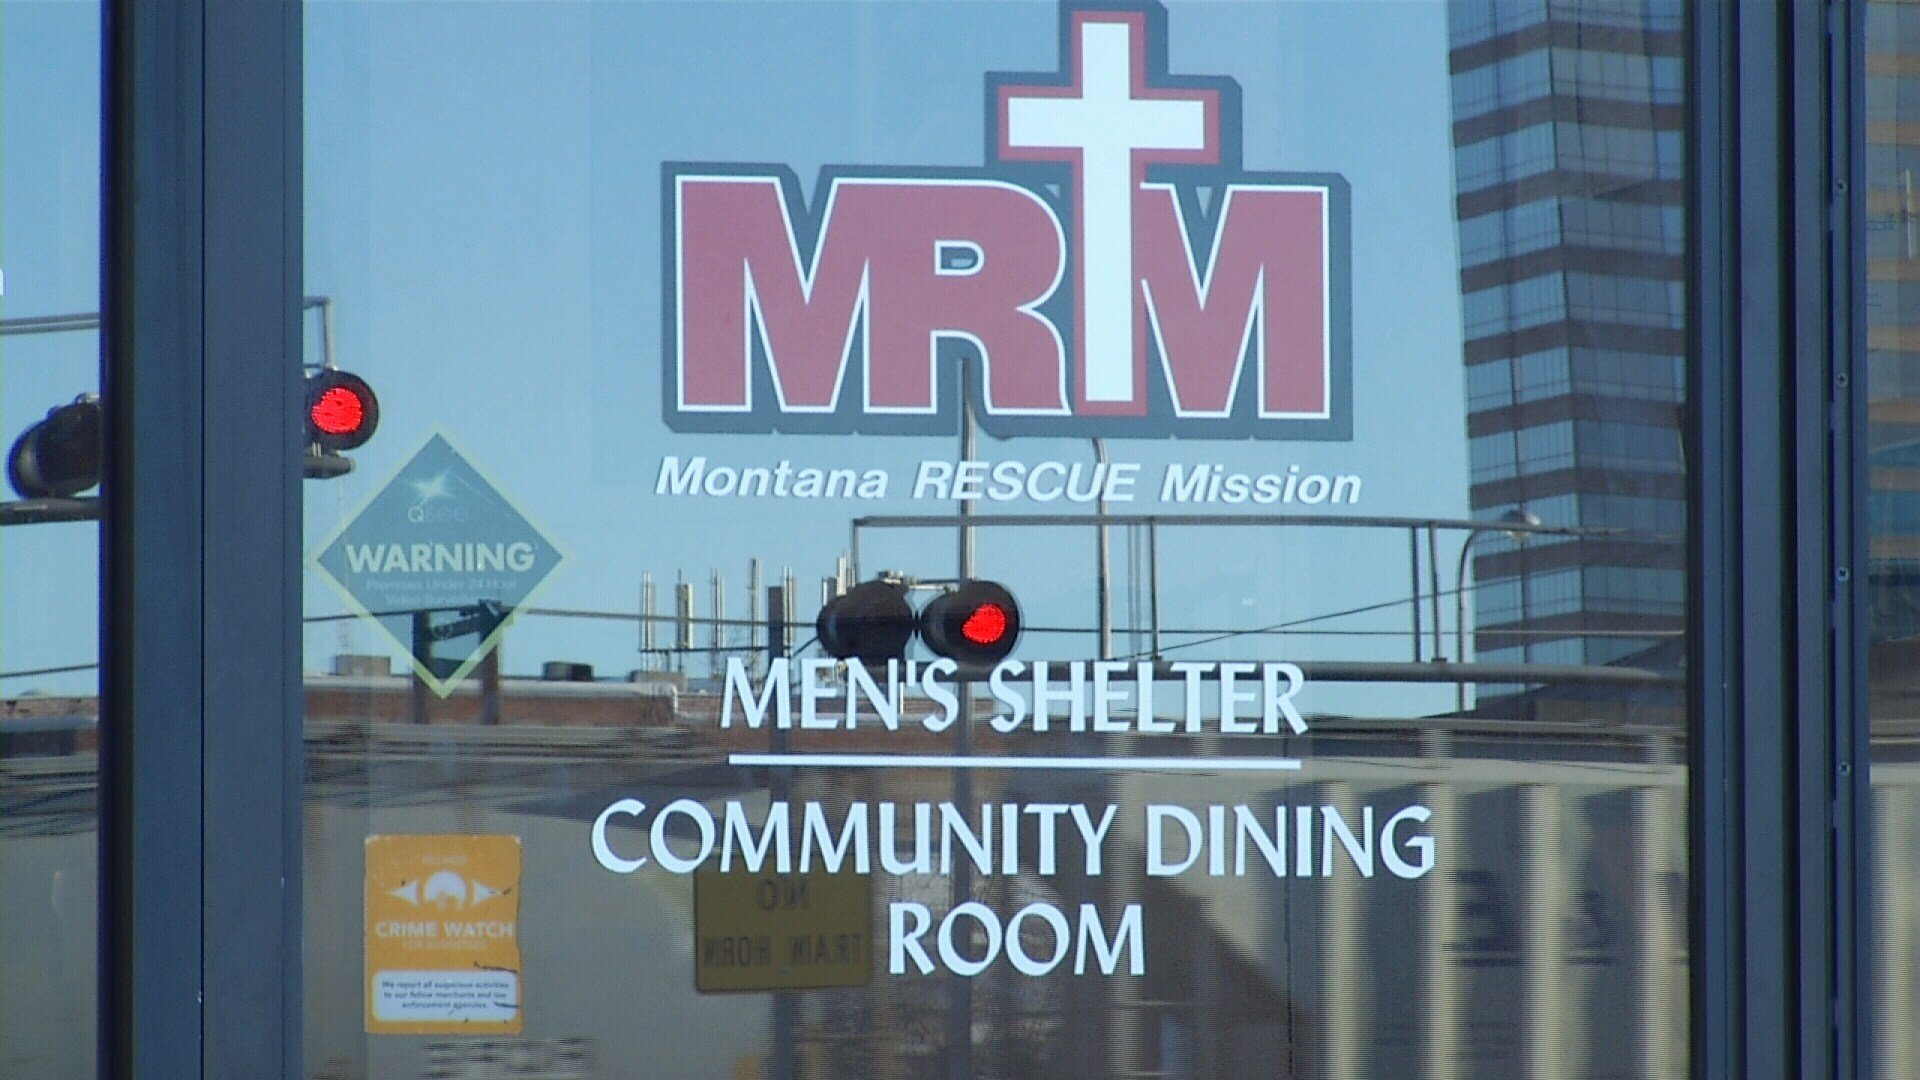 The Montana Rescue Mission is located at 2800 Minnesota Ave.